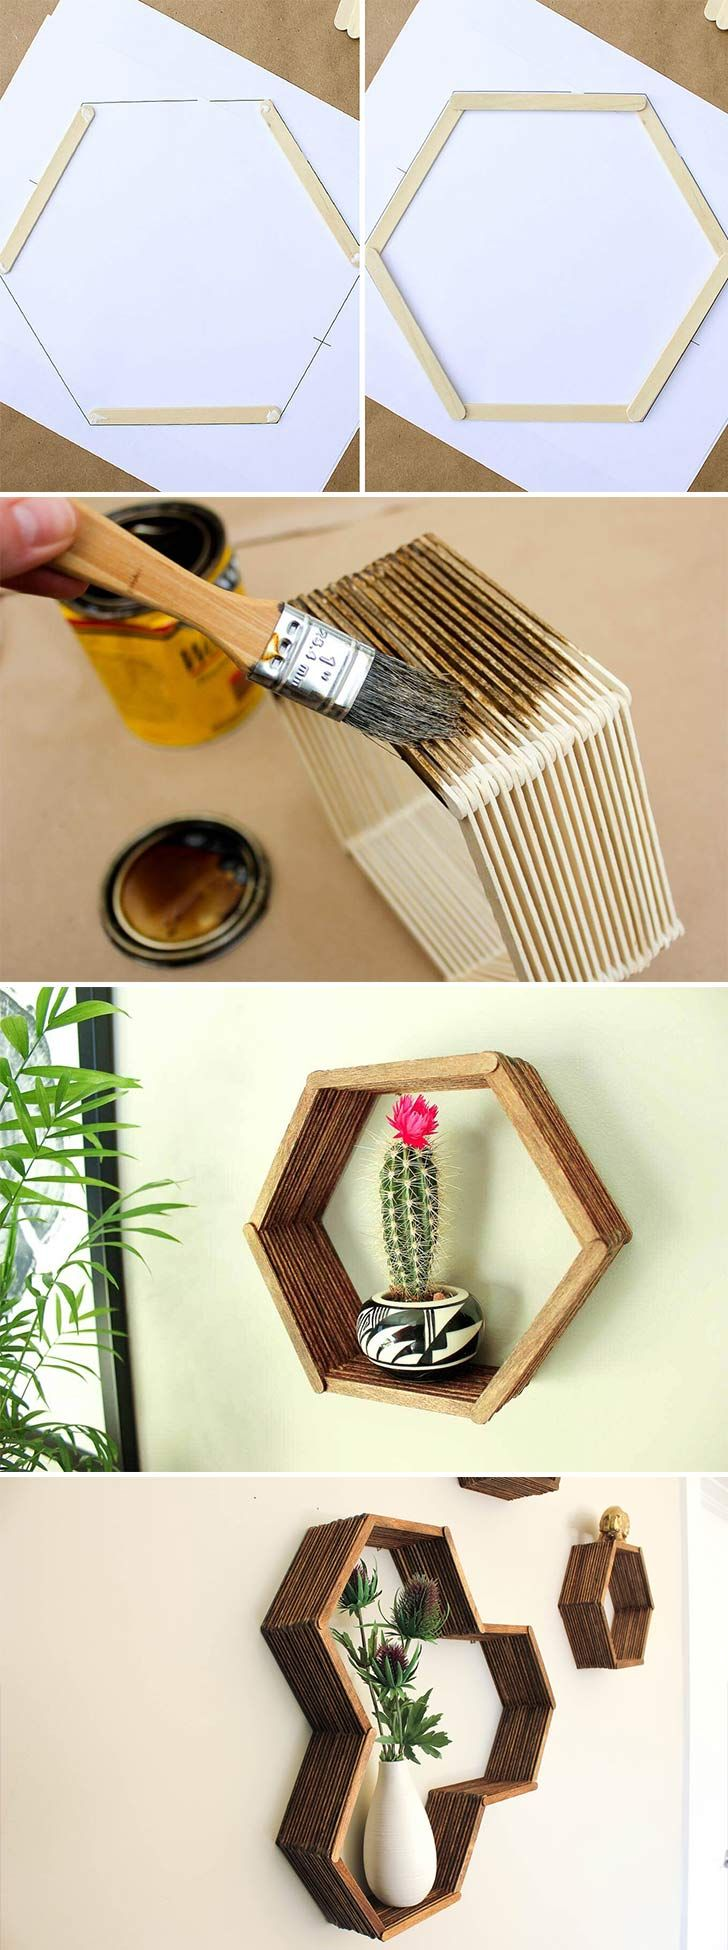 easy cheap diy home decorating ideas best 20 diy home decor ideas on pinterest